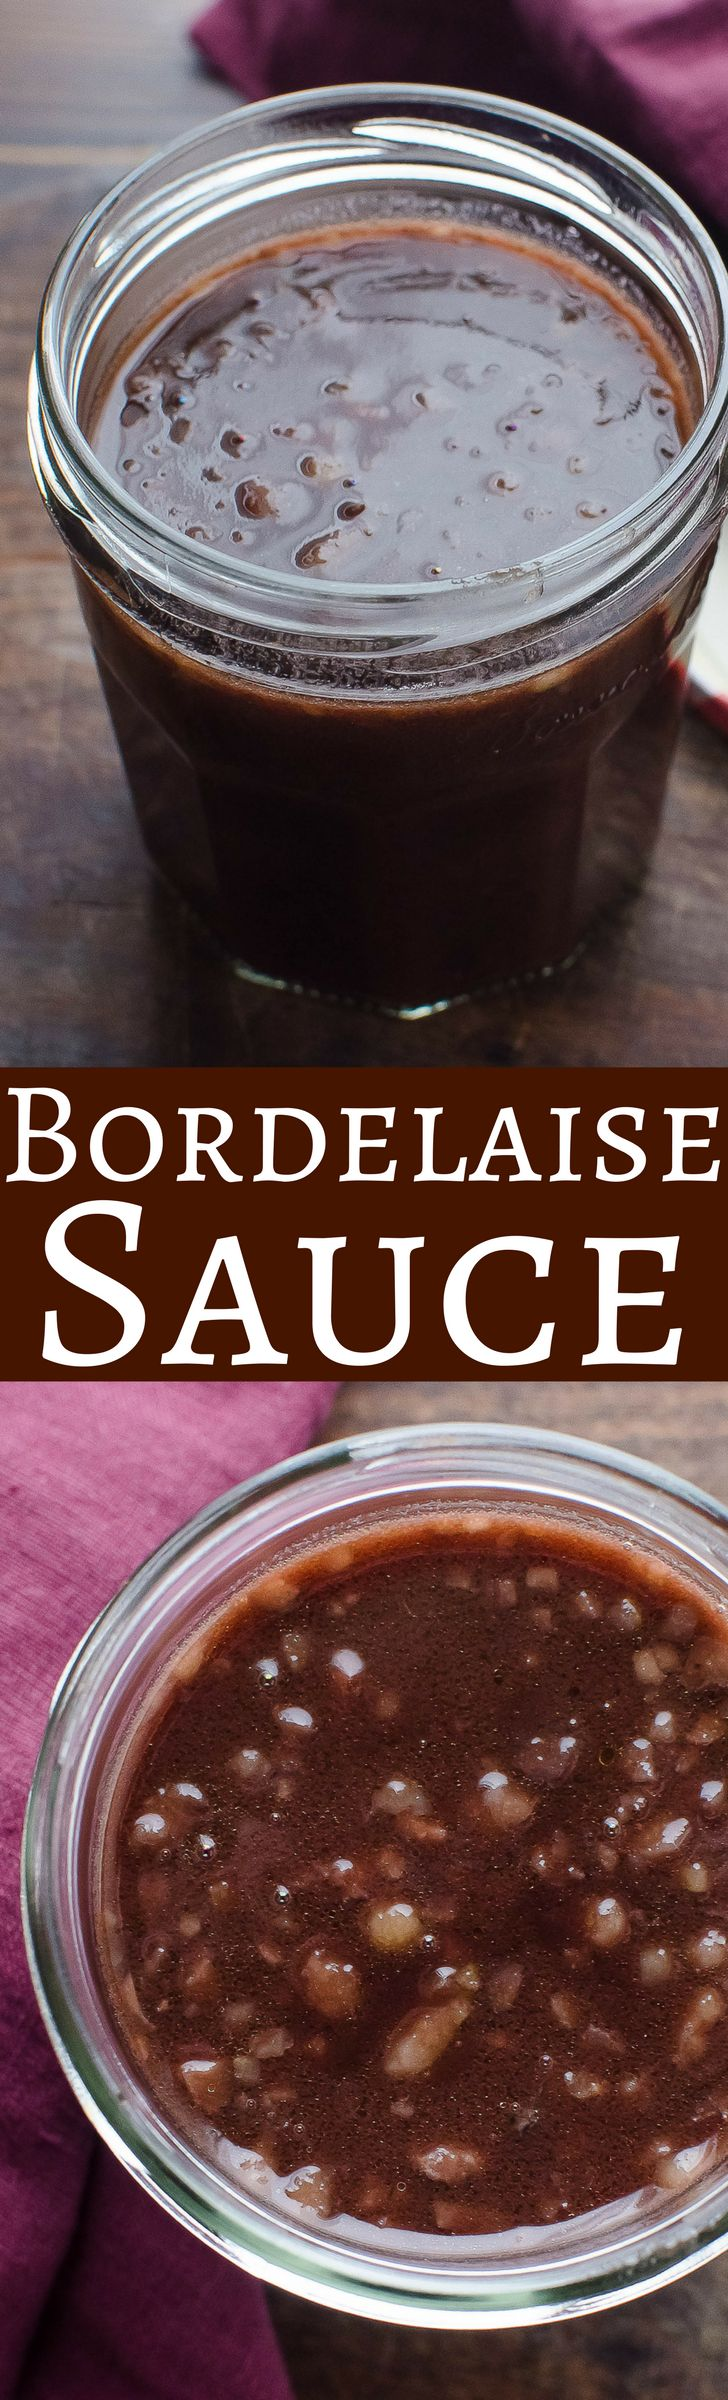 Made with a Cheater's Demi Glace, red wine and bone marrow, this is the perfect sauce to garnish fine roasts and steaks. via @GarlicandZest